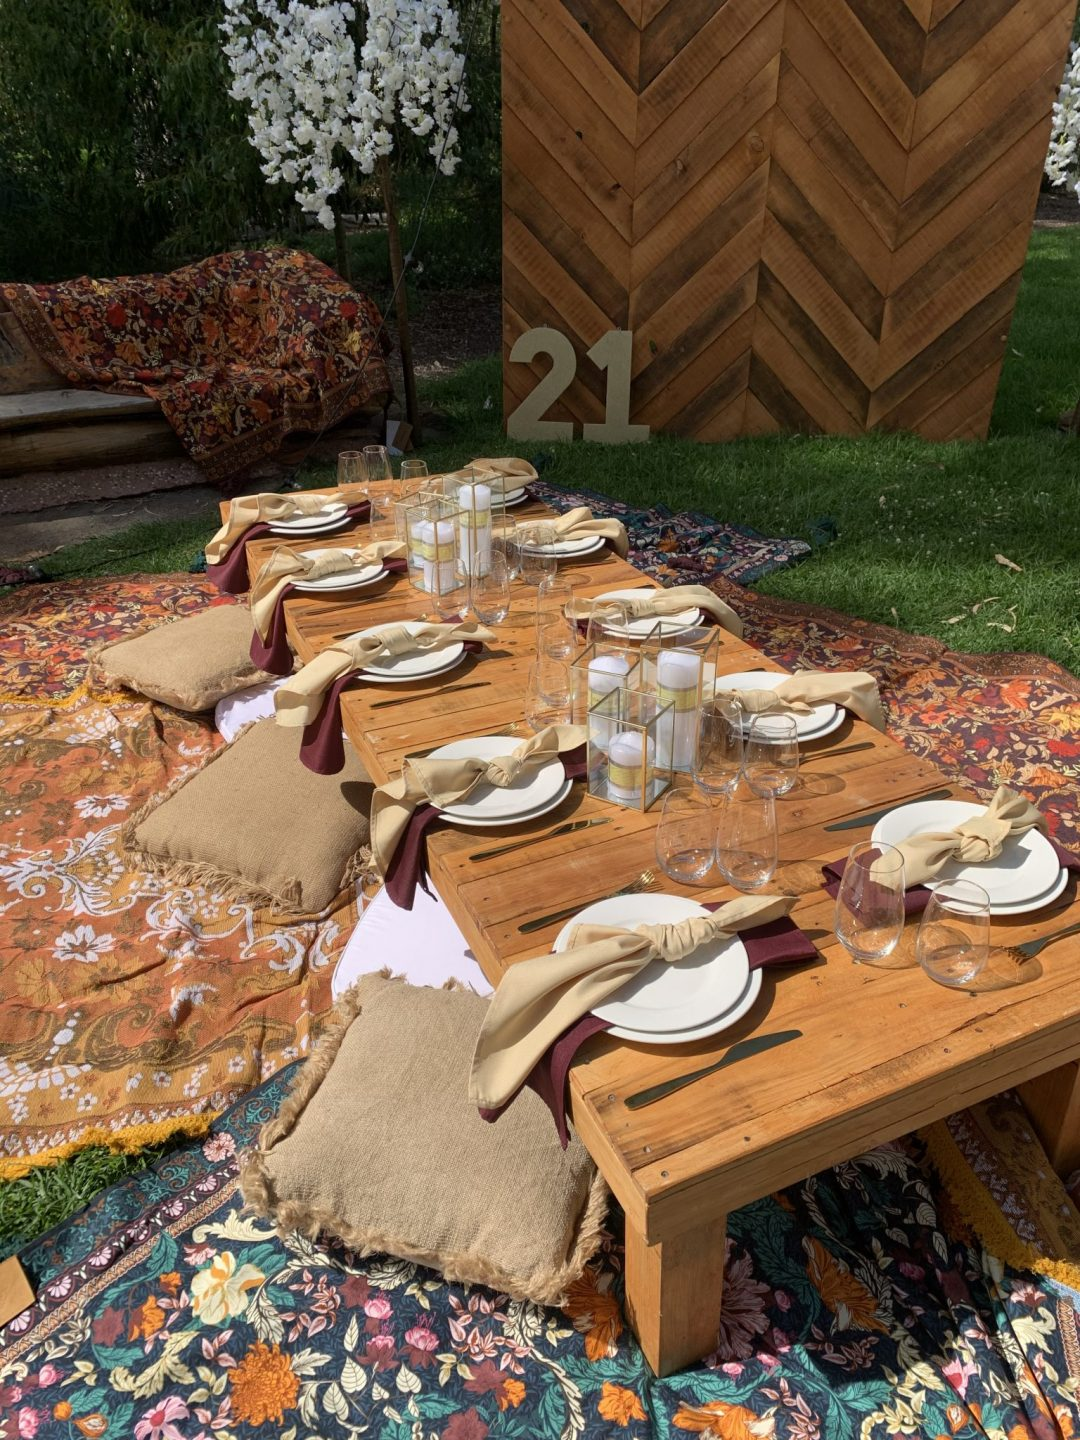 rustic-pallet-picnic-table-glass-candle-boxes-with-champagne-and-burgundy-linen-napkins-AFC-crockery-and-standard-glassware-assorted-cushions-and-wandering-folk-rugs